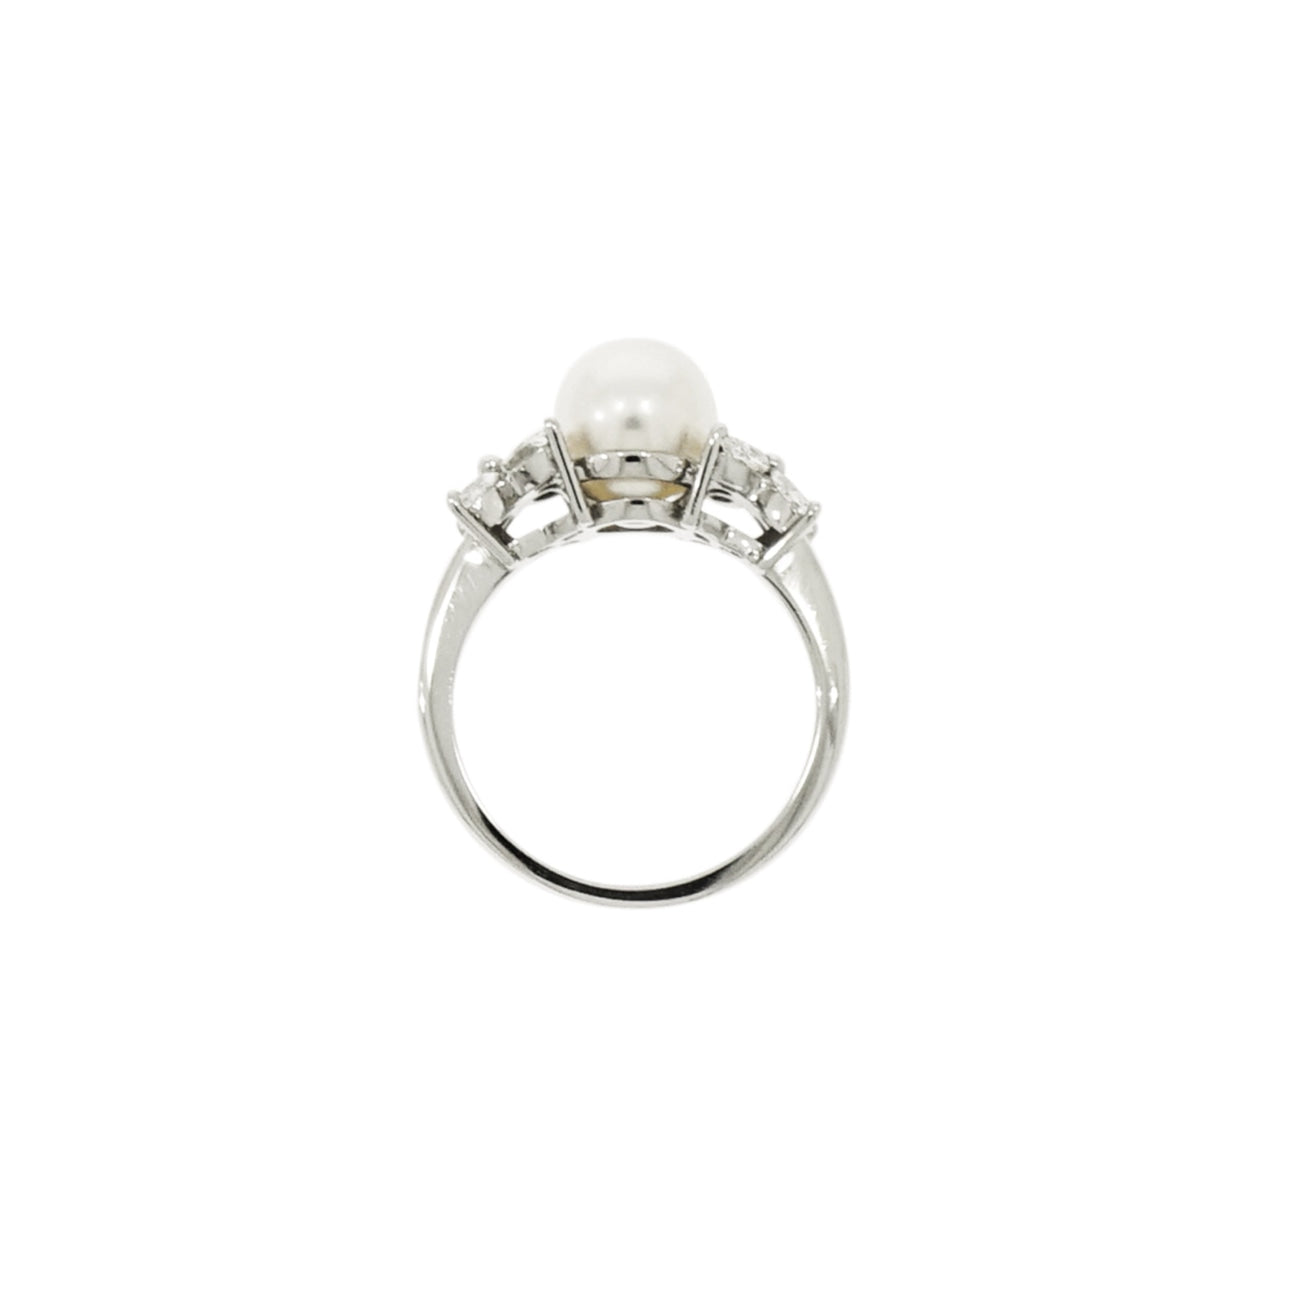 Tiffany & Co. - Estate Jewelry Estate Jewelry - Tiffany & Co. Victoria White Akoya Cultured Pearl and Diamond Platinum Ring | Manfredi